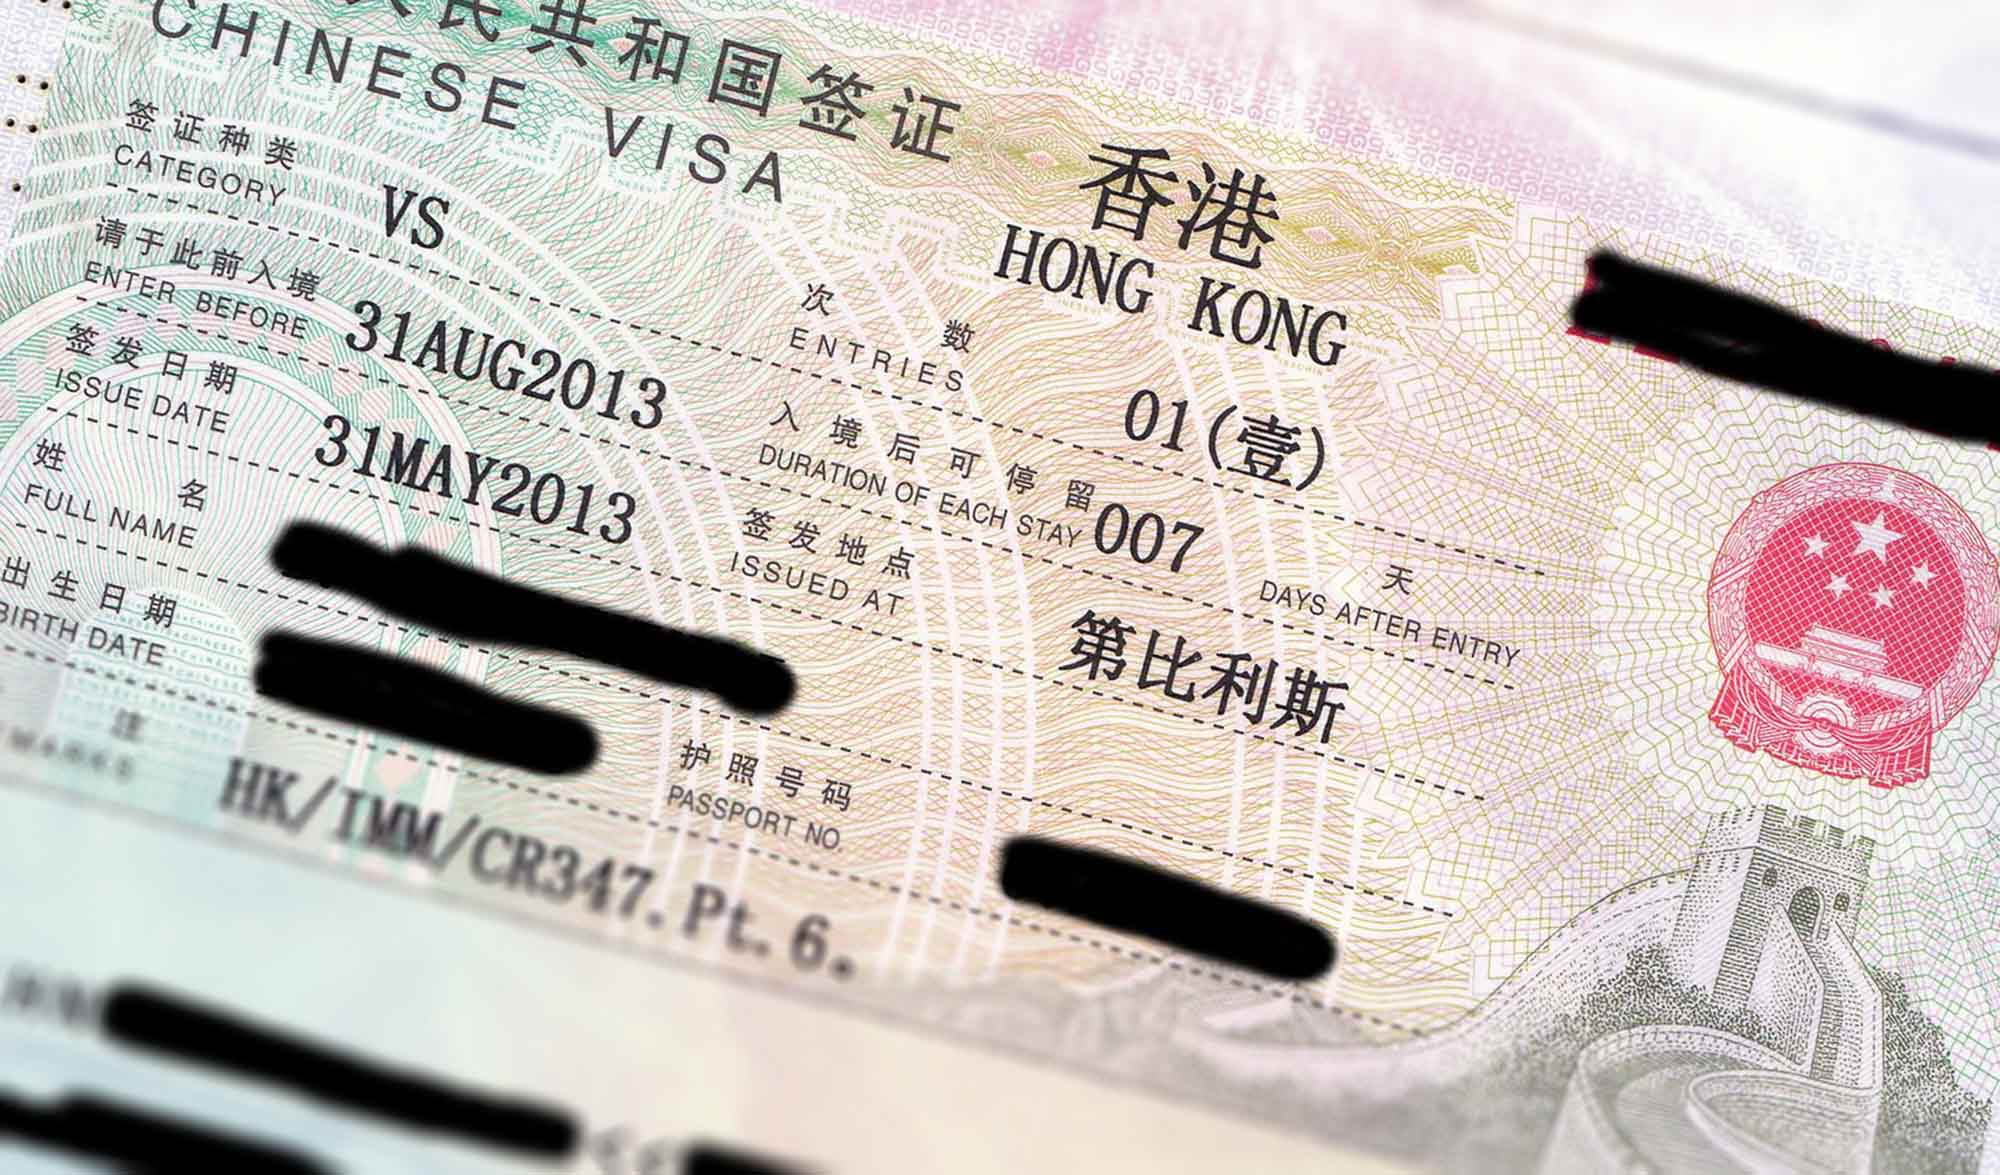 Saudi Arabia Visa Application Form Hong Kong